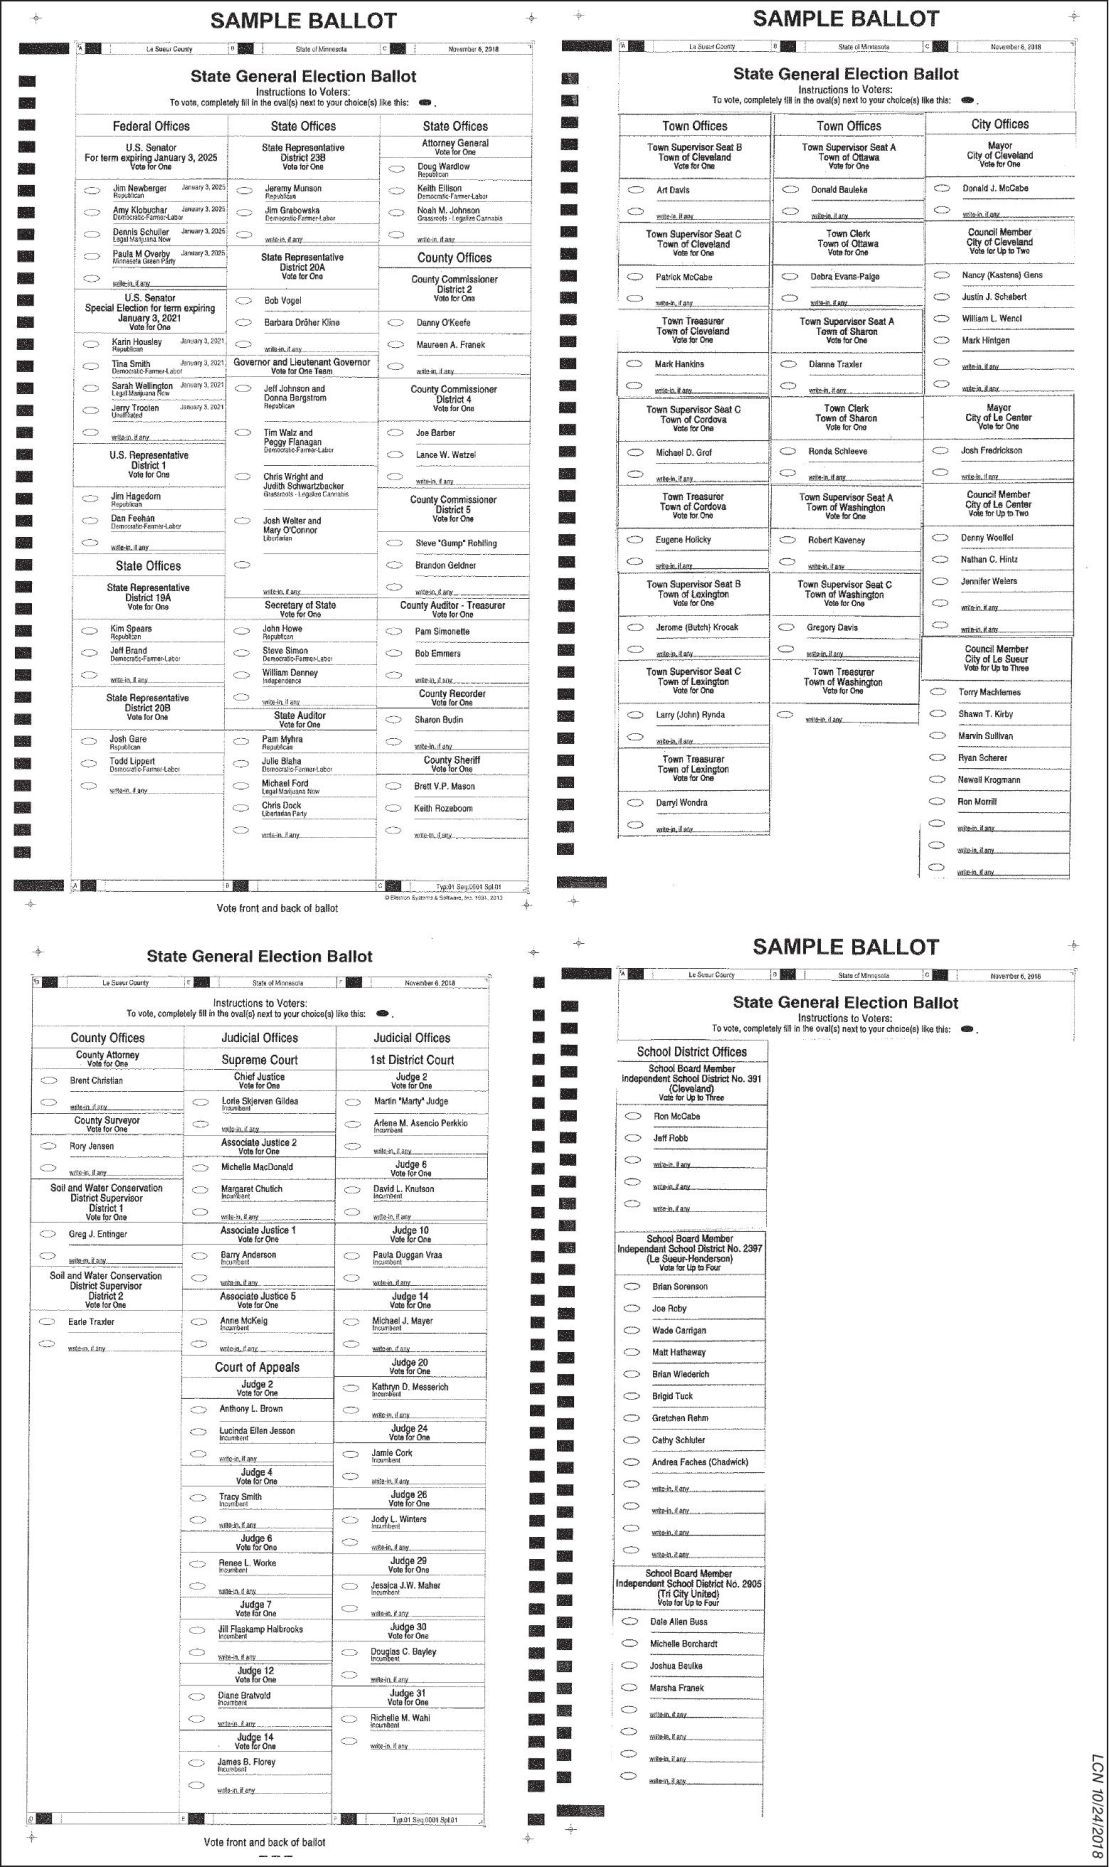 Le Sueur Co Admin: Sample Ballot 2018